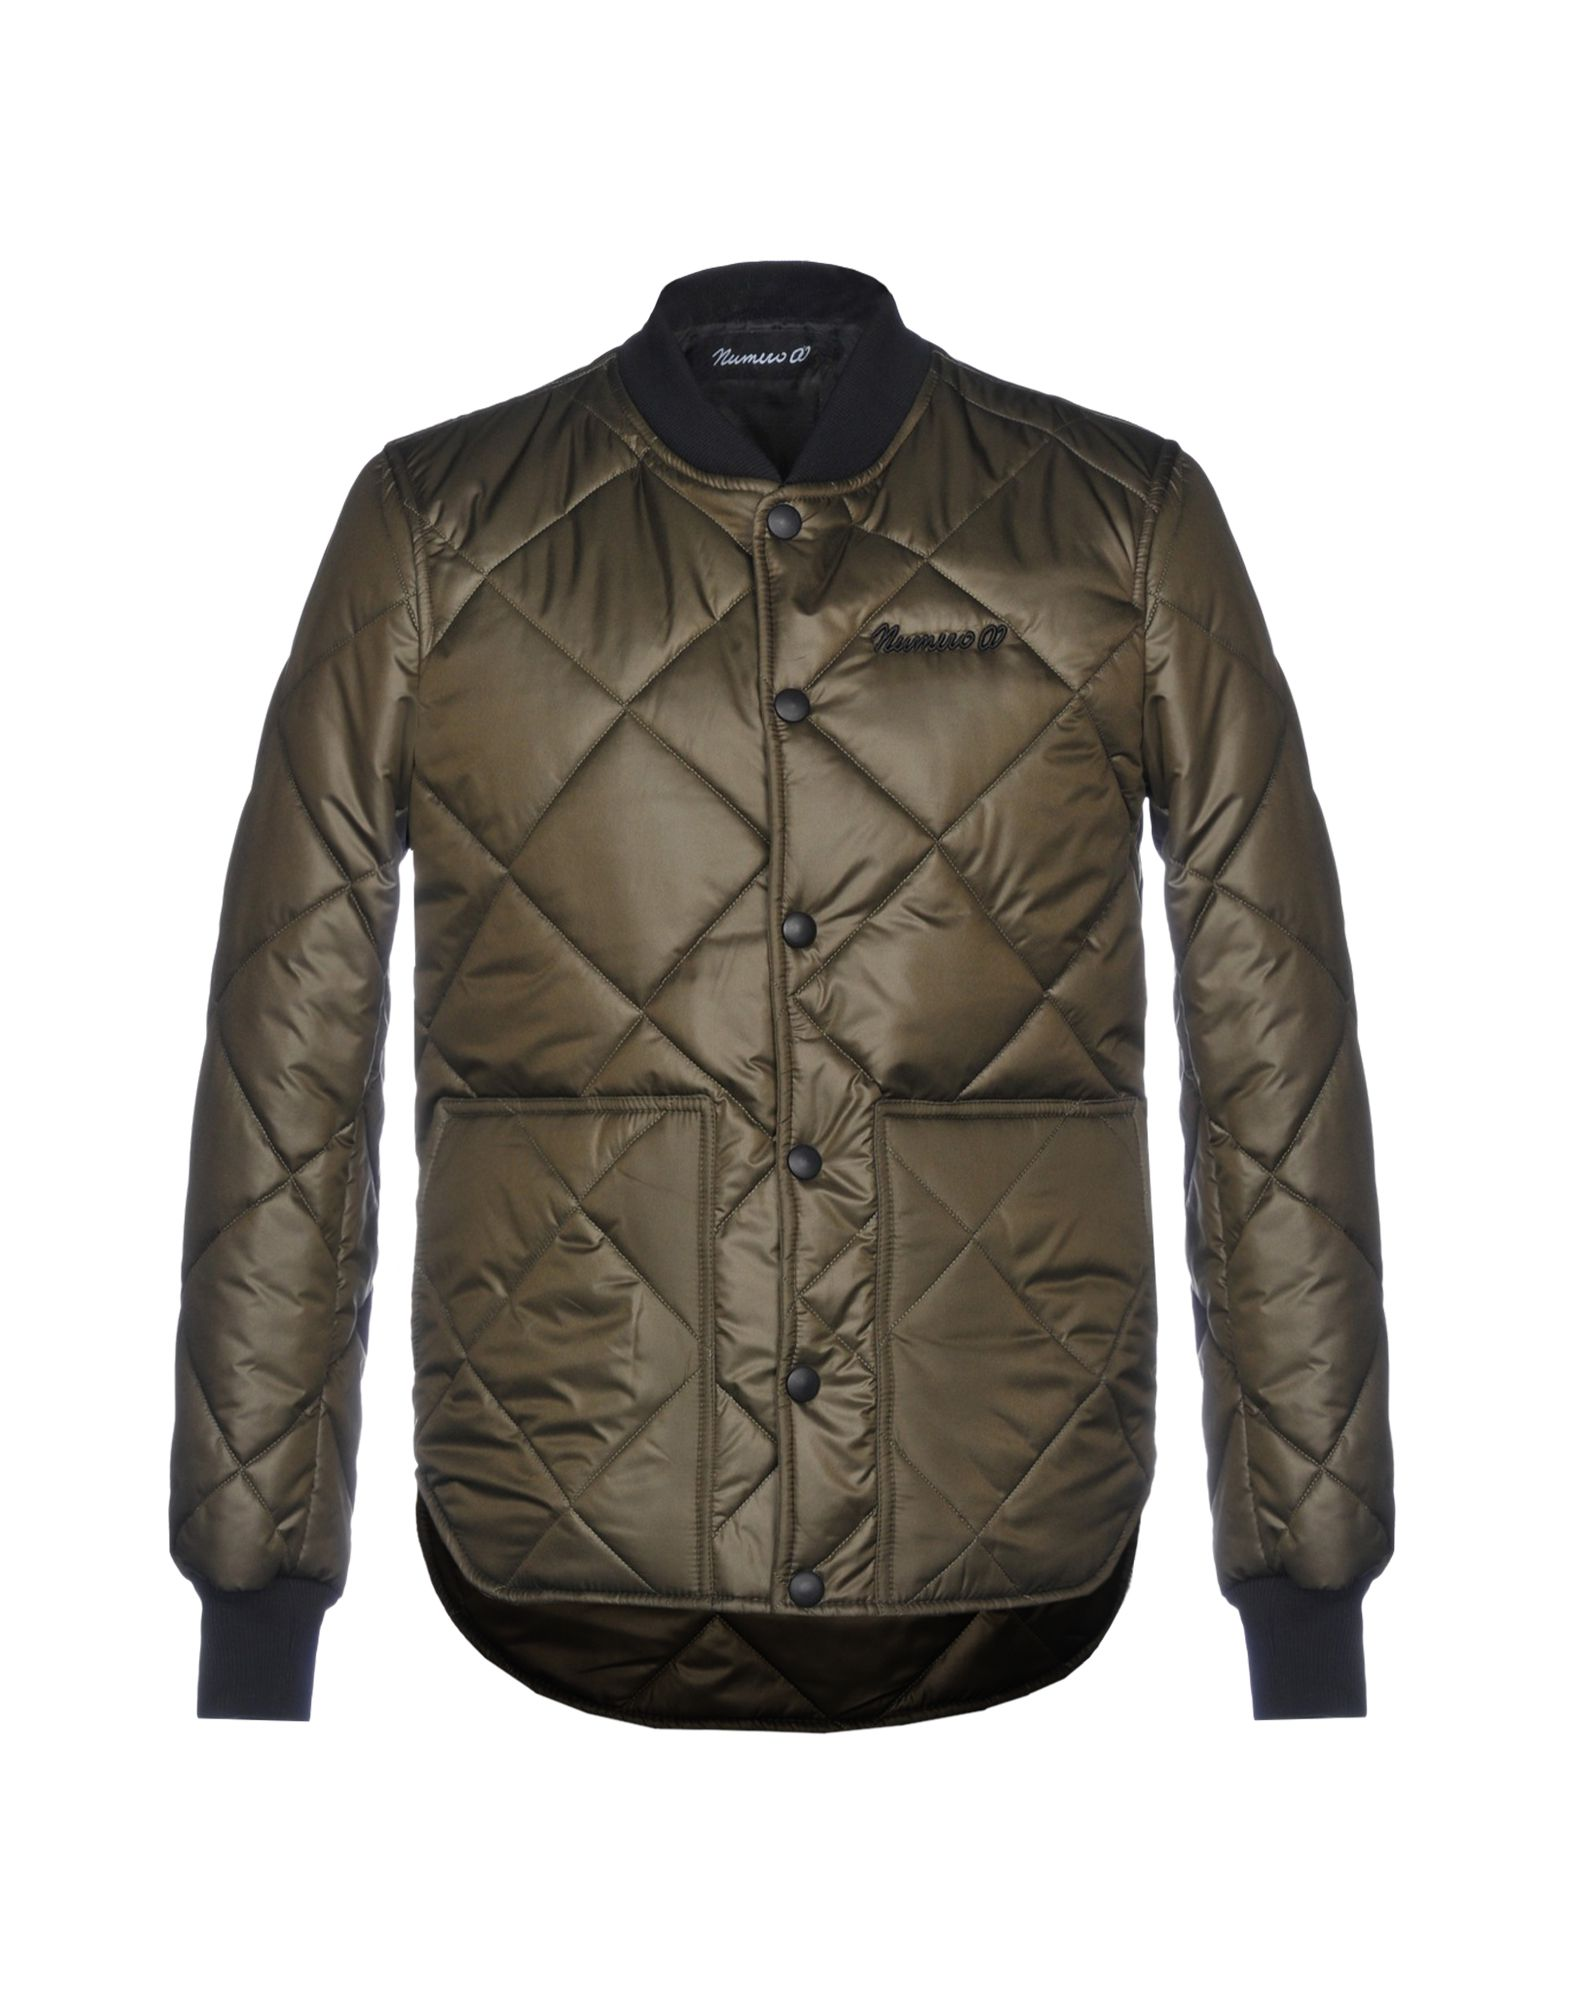 NUMERO 00 Jacket in Military Green